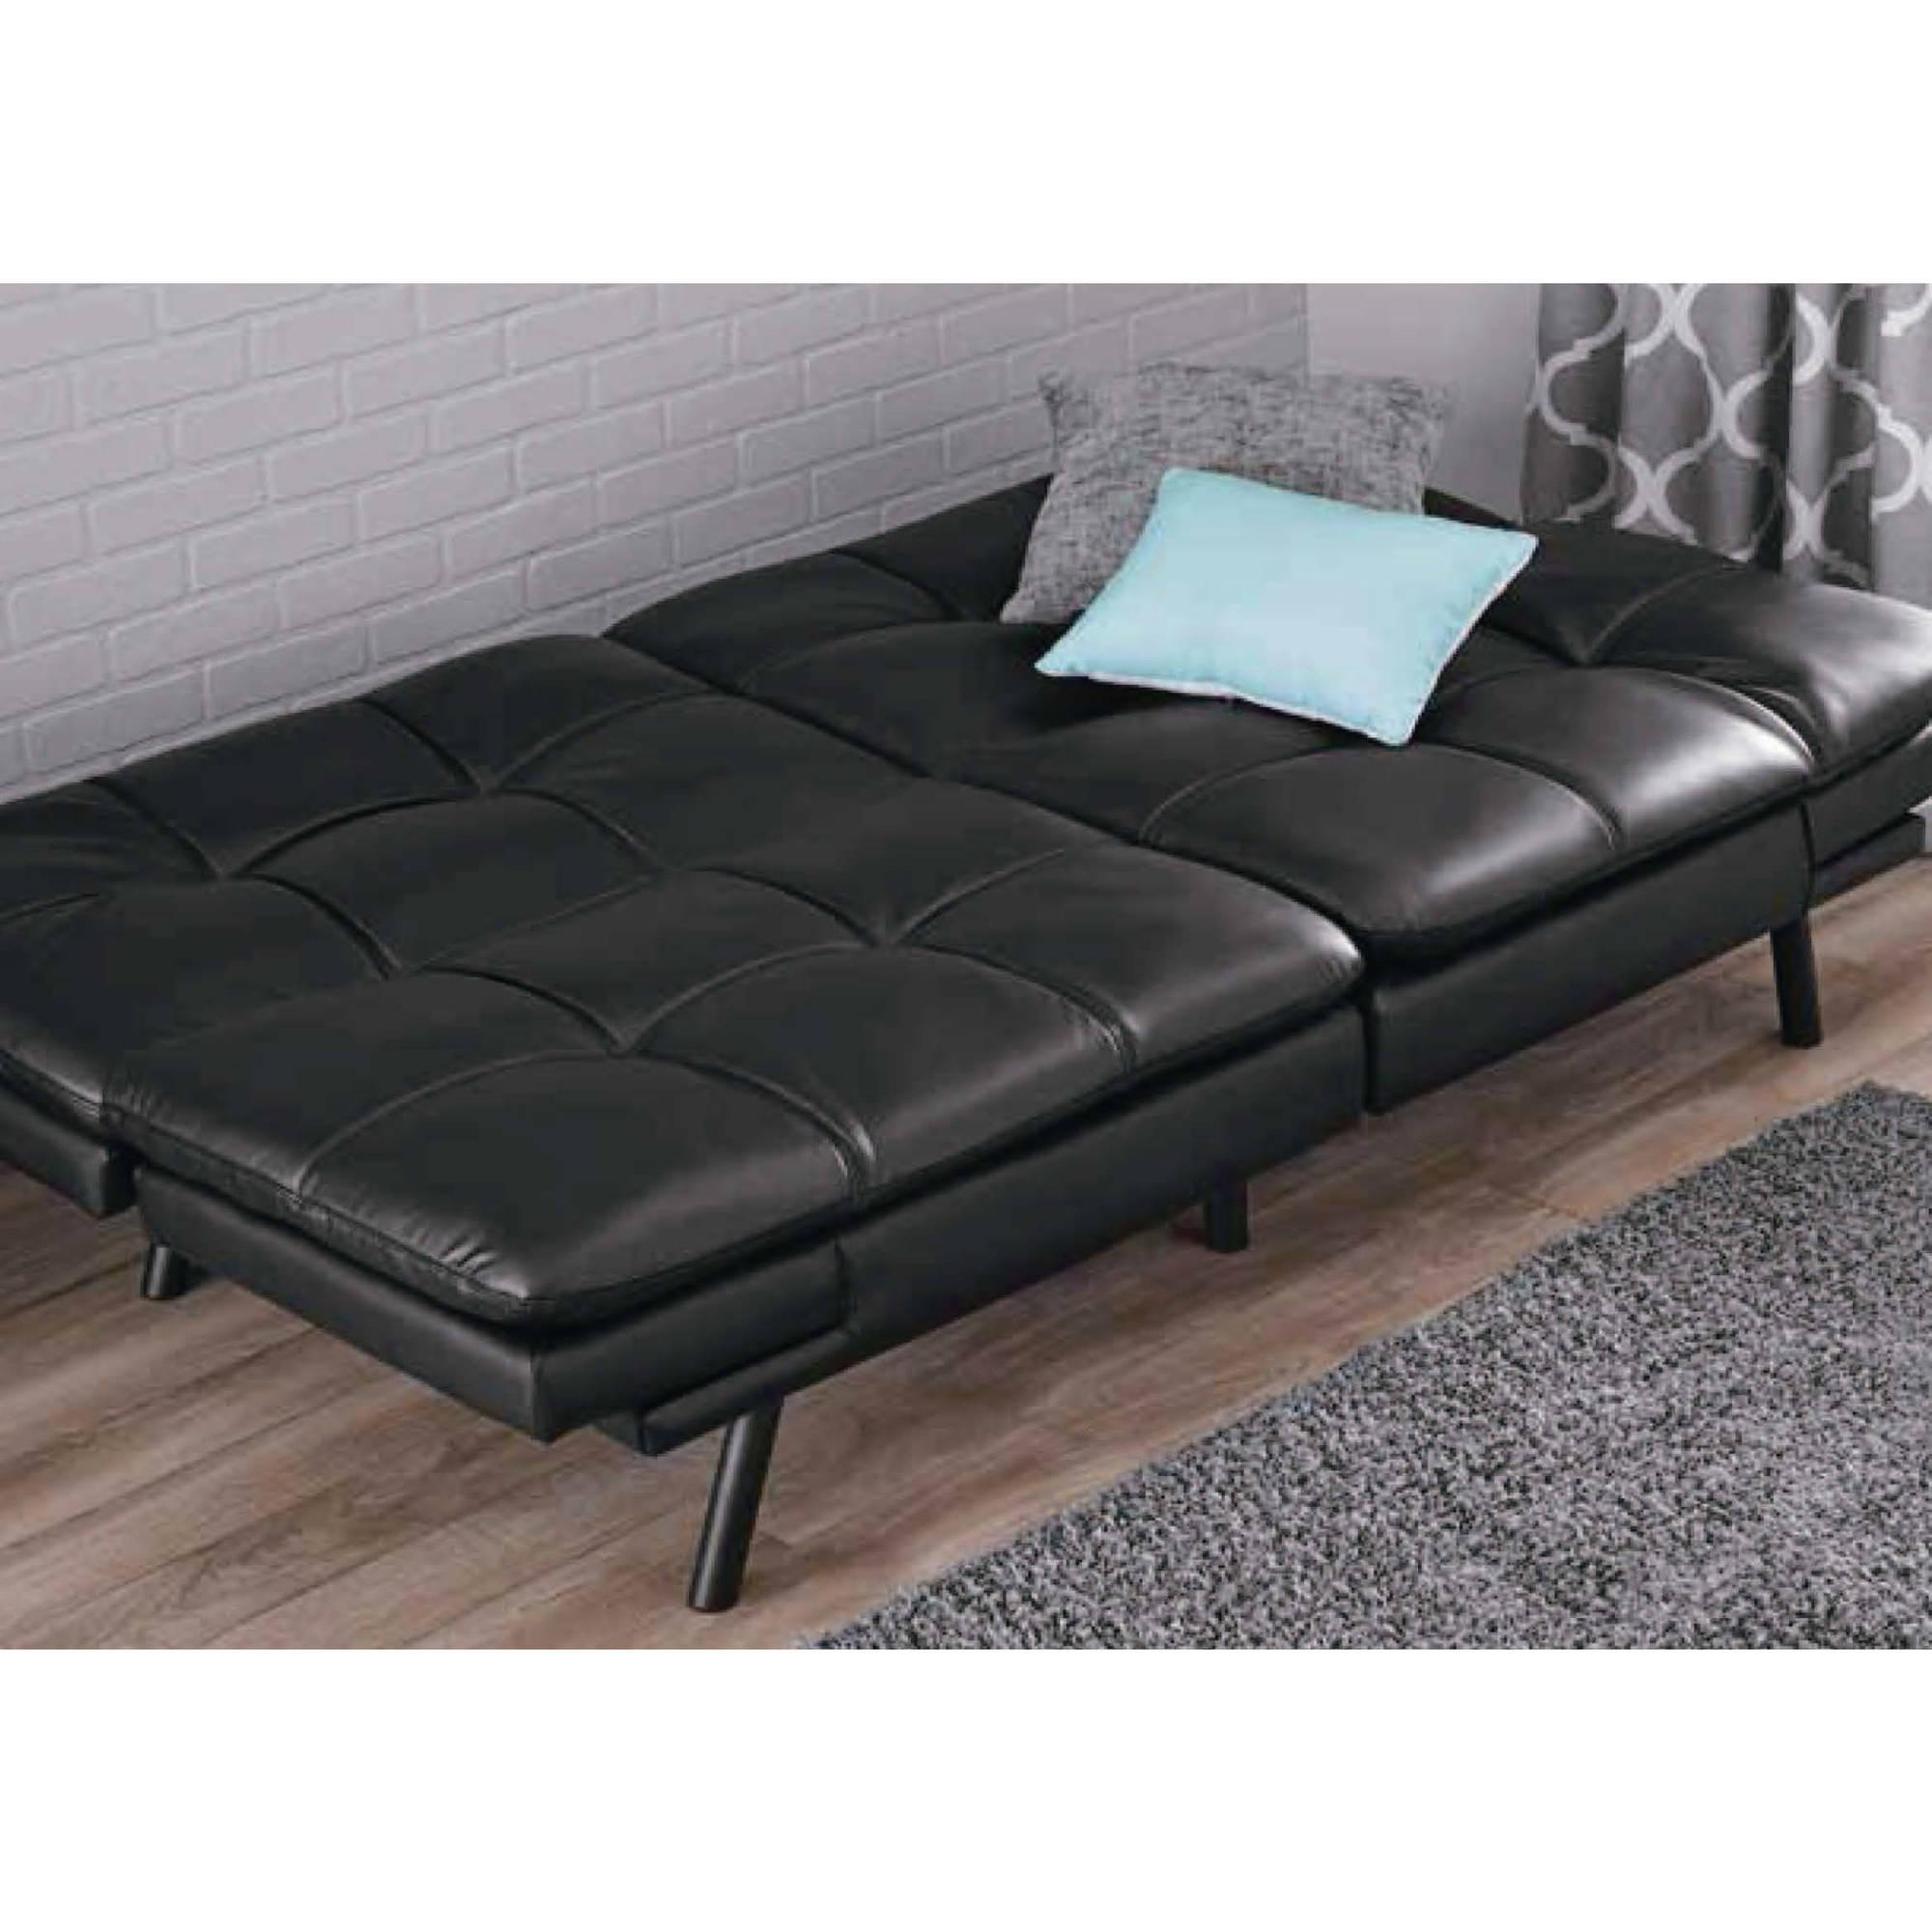 Mainstays Memory Foam Futon, Multiple Colors – Walmart With Regard To Mainstay Sofas (Image 14 of 20)